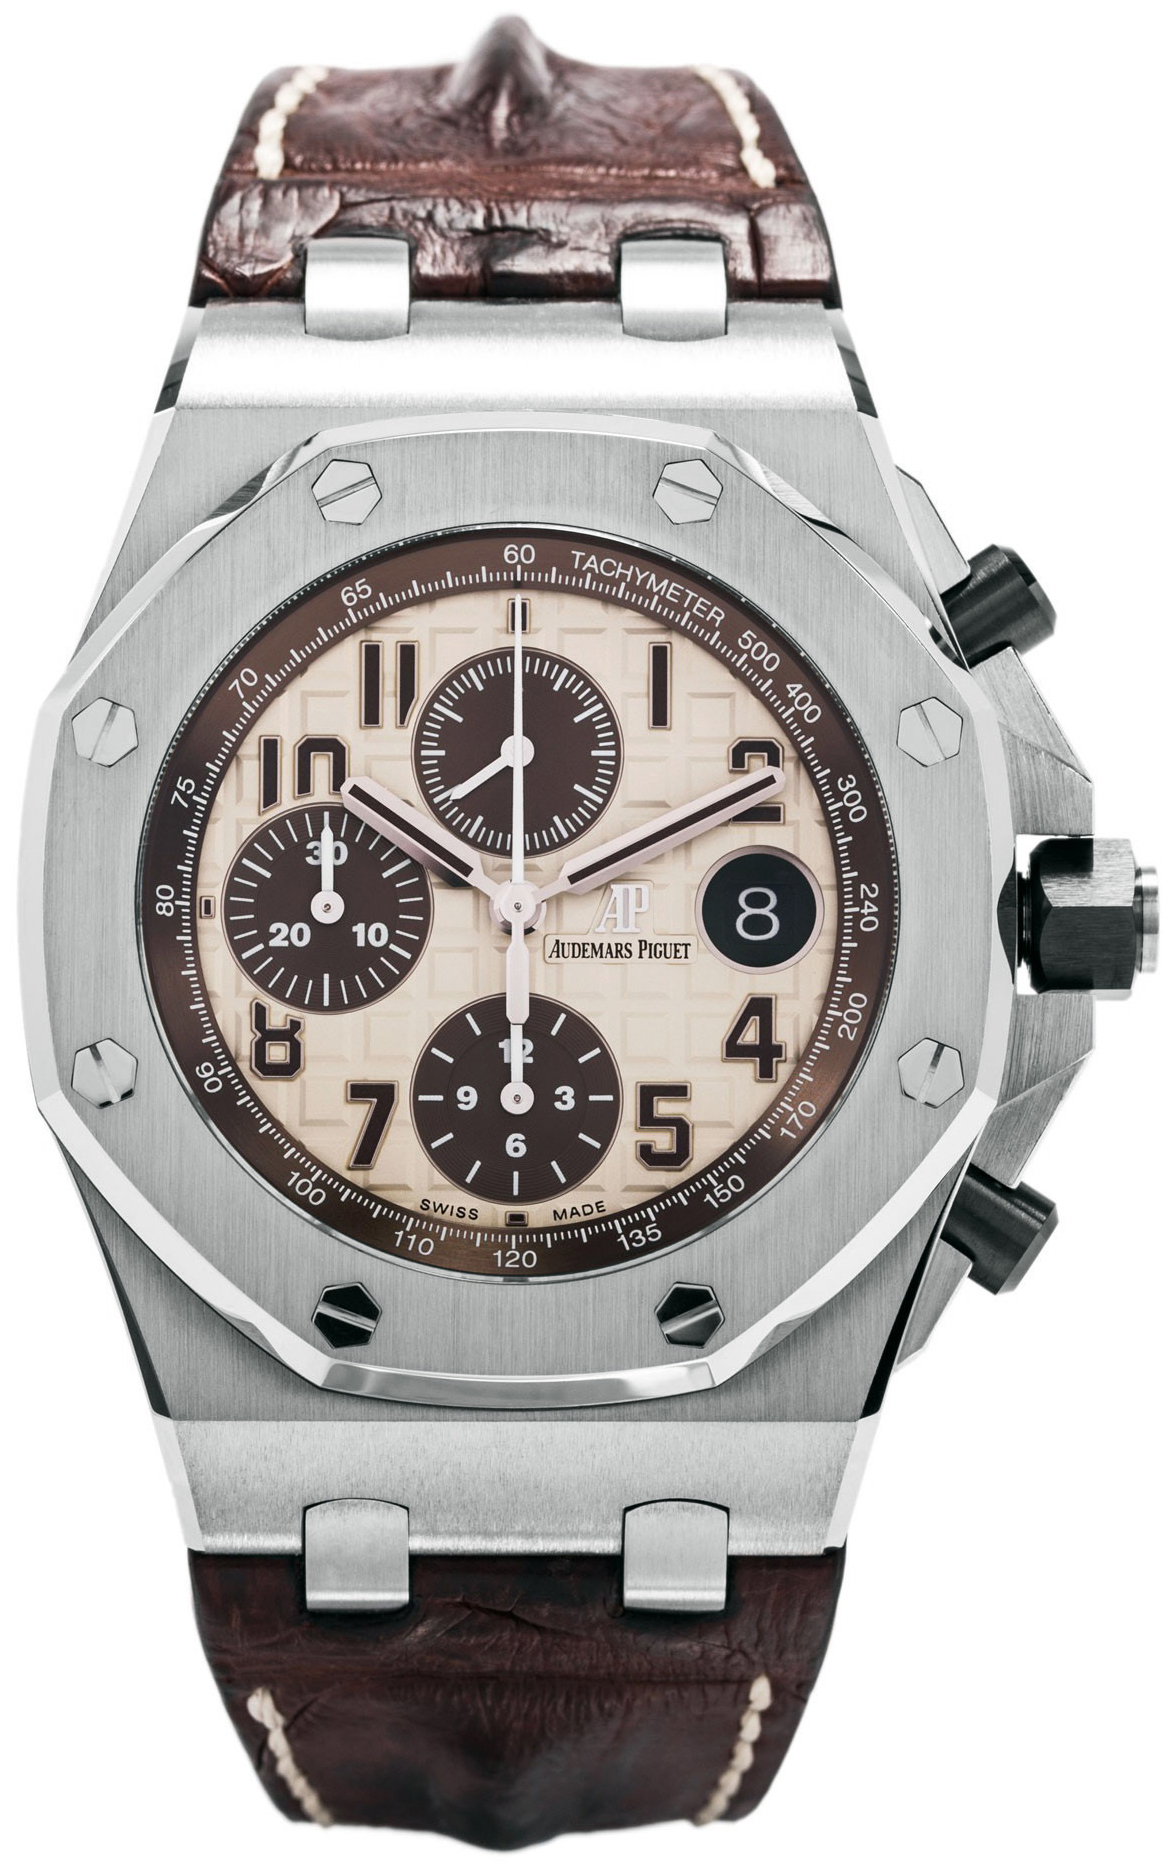 Audemars Piguet Royal Oak Offshore Herrklocka 26470ST.OO.A801CR.01 - Audemars Piguet